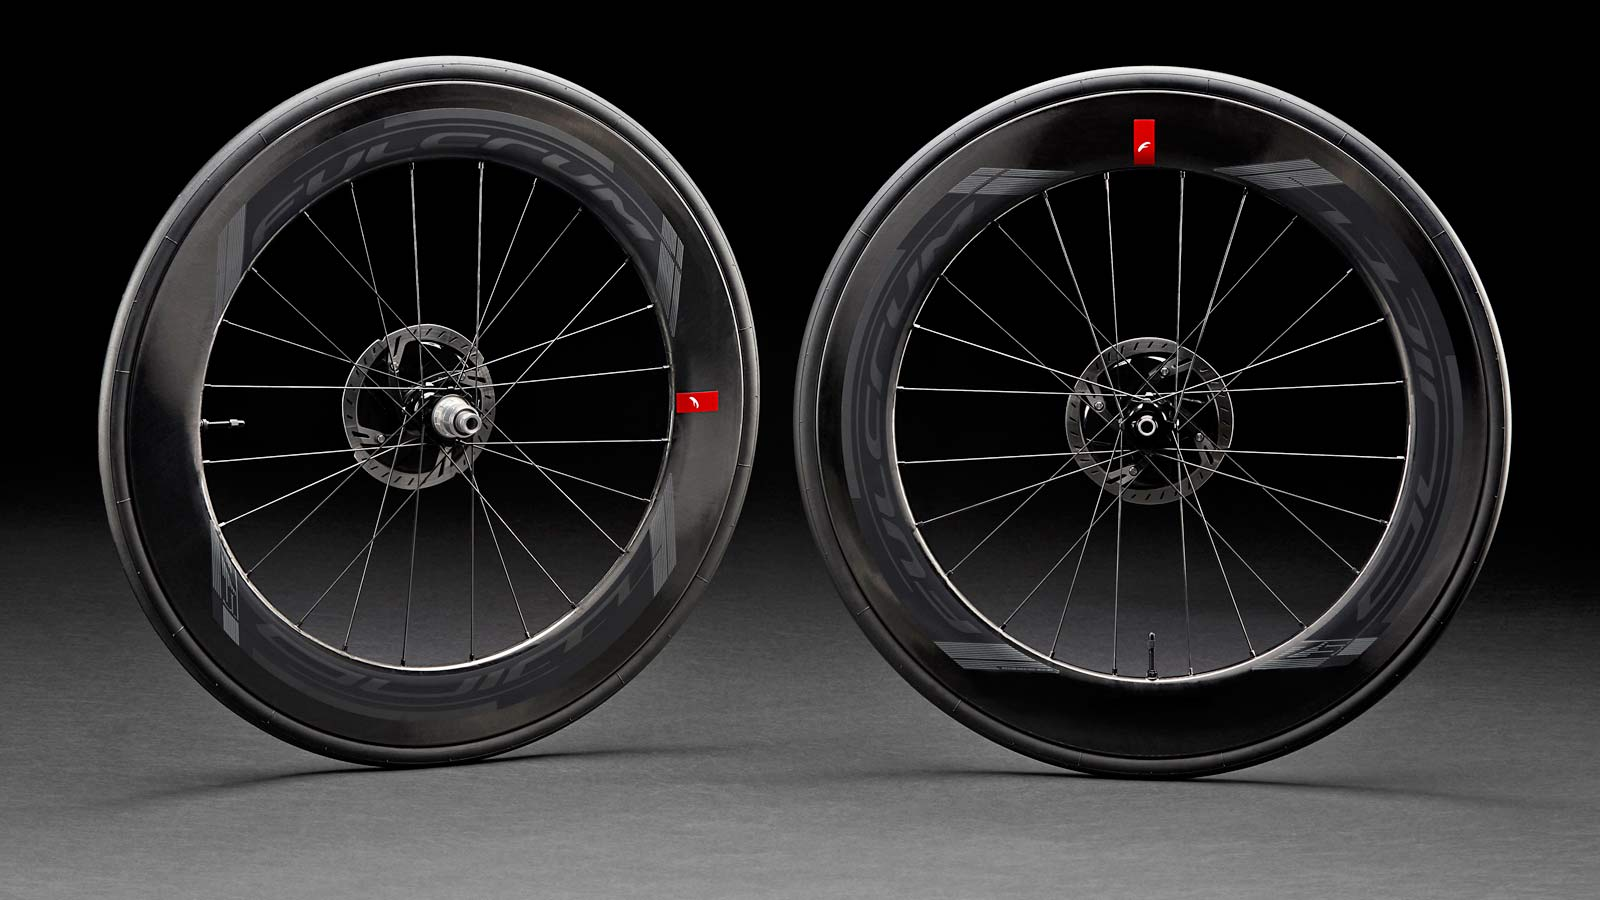 Fulcrum-Wind-75-DB-deep-aero-carbon-triathlon-wheels_wheelset-pair.jpg